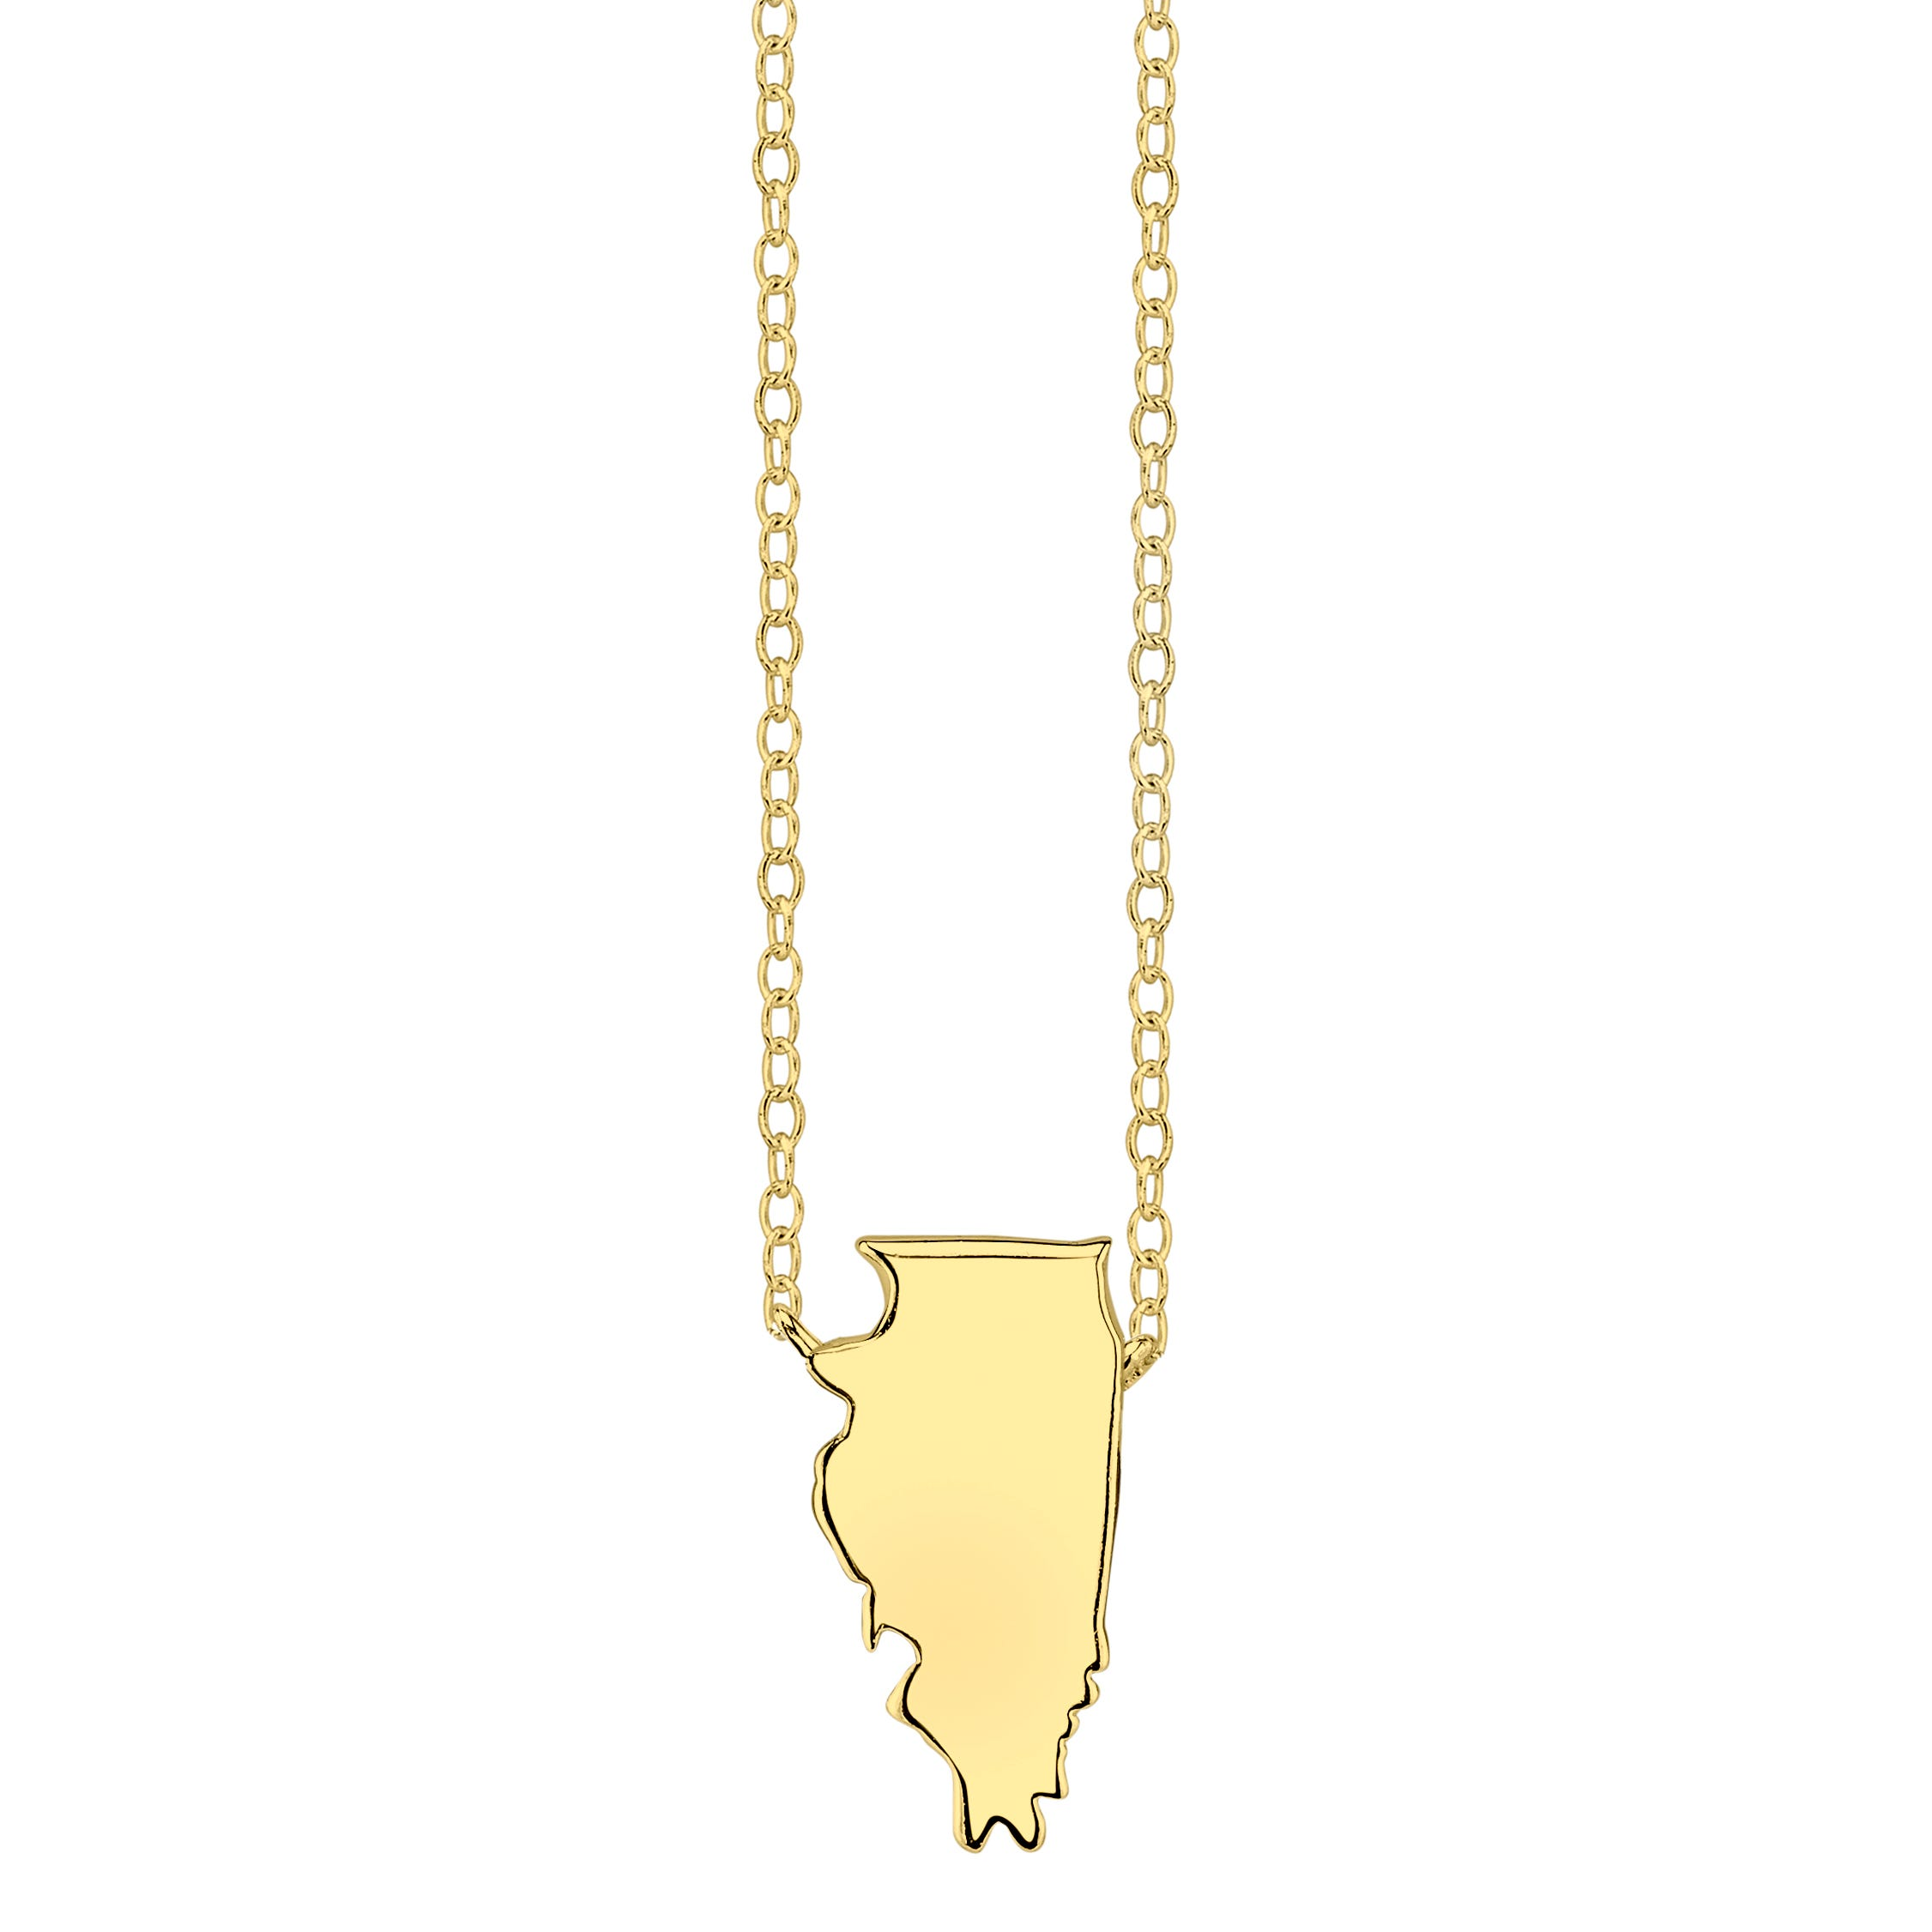 Illinois State Pendant Necklace in Yellow Gold Plated Sterling Silver